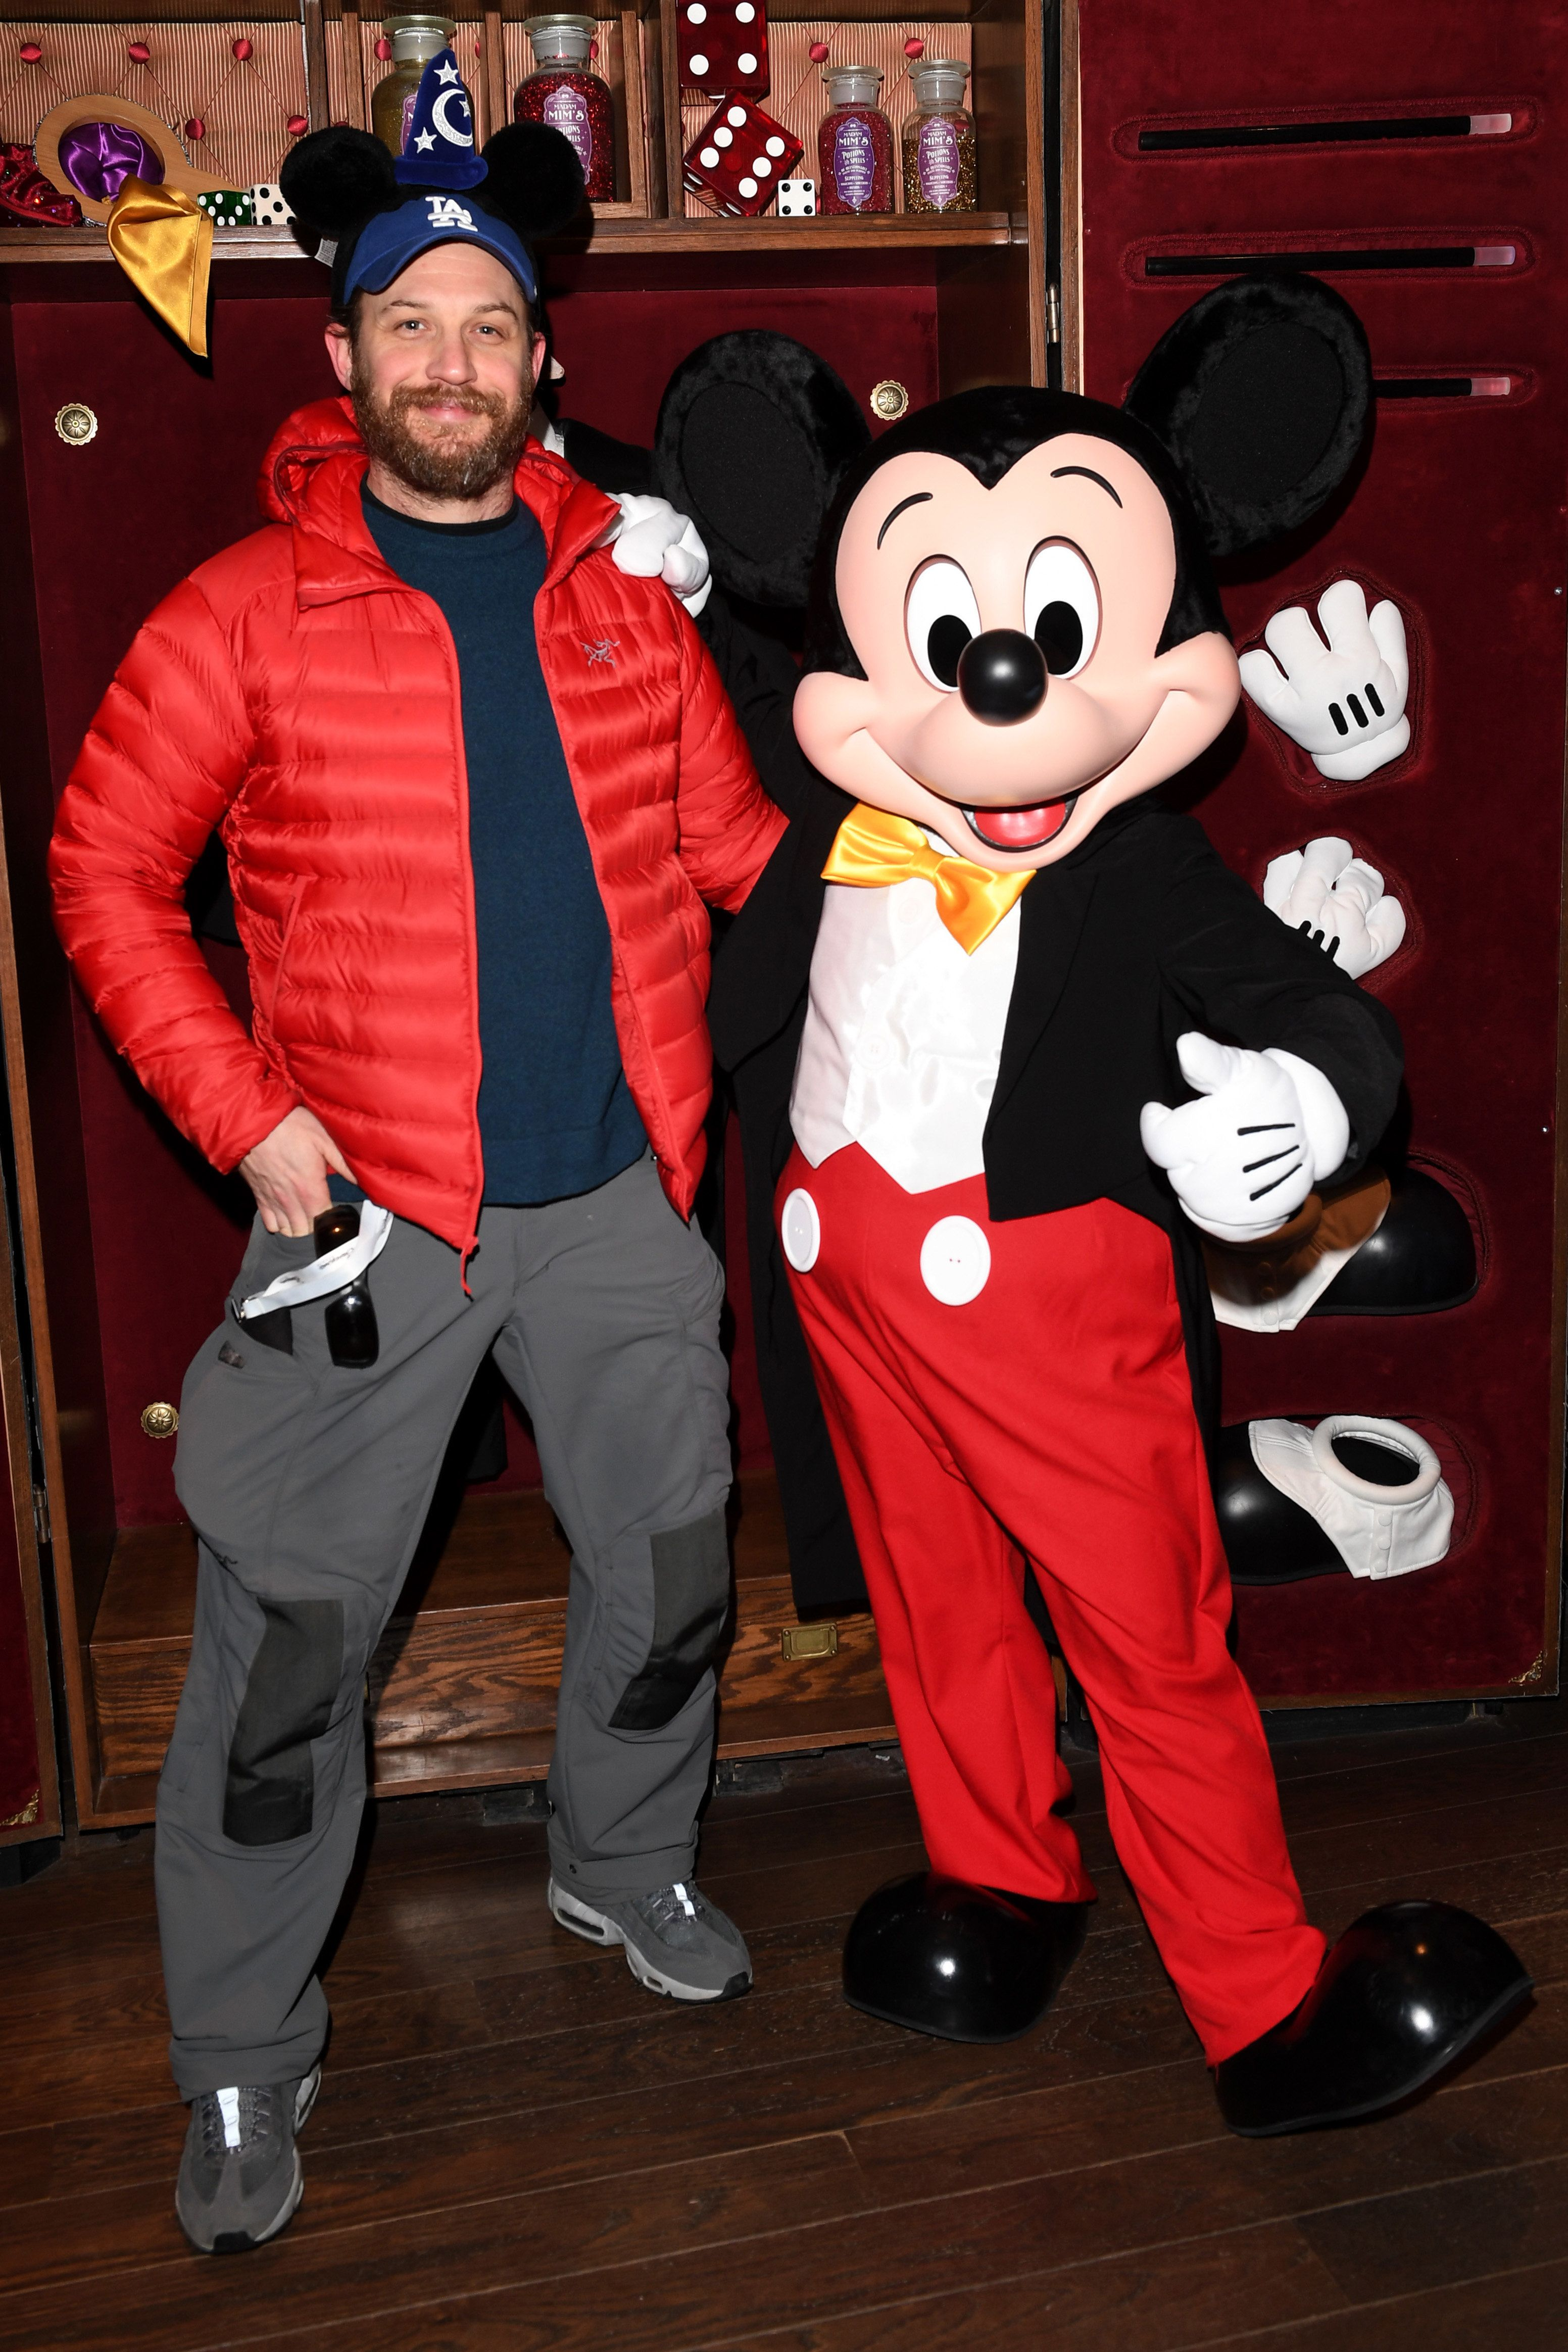 Tom Hardy (left) and Mickey Mouse (right, we